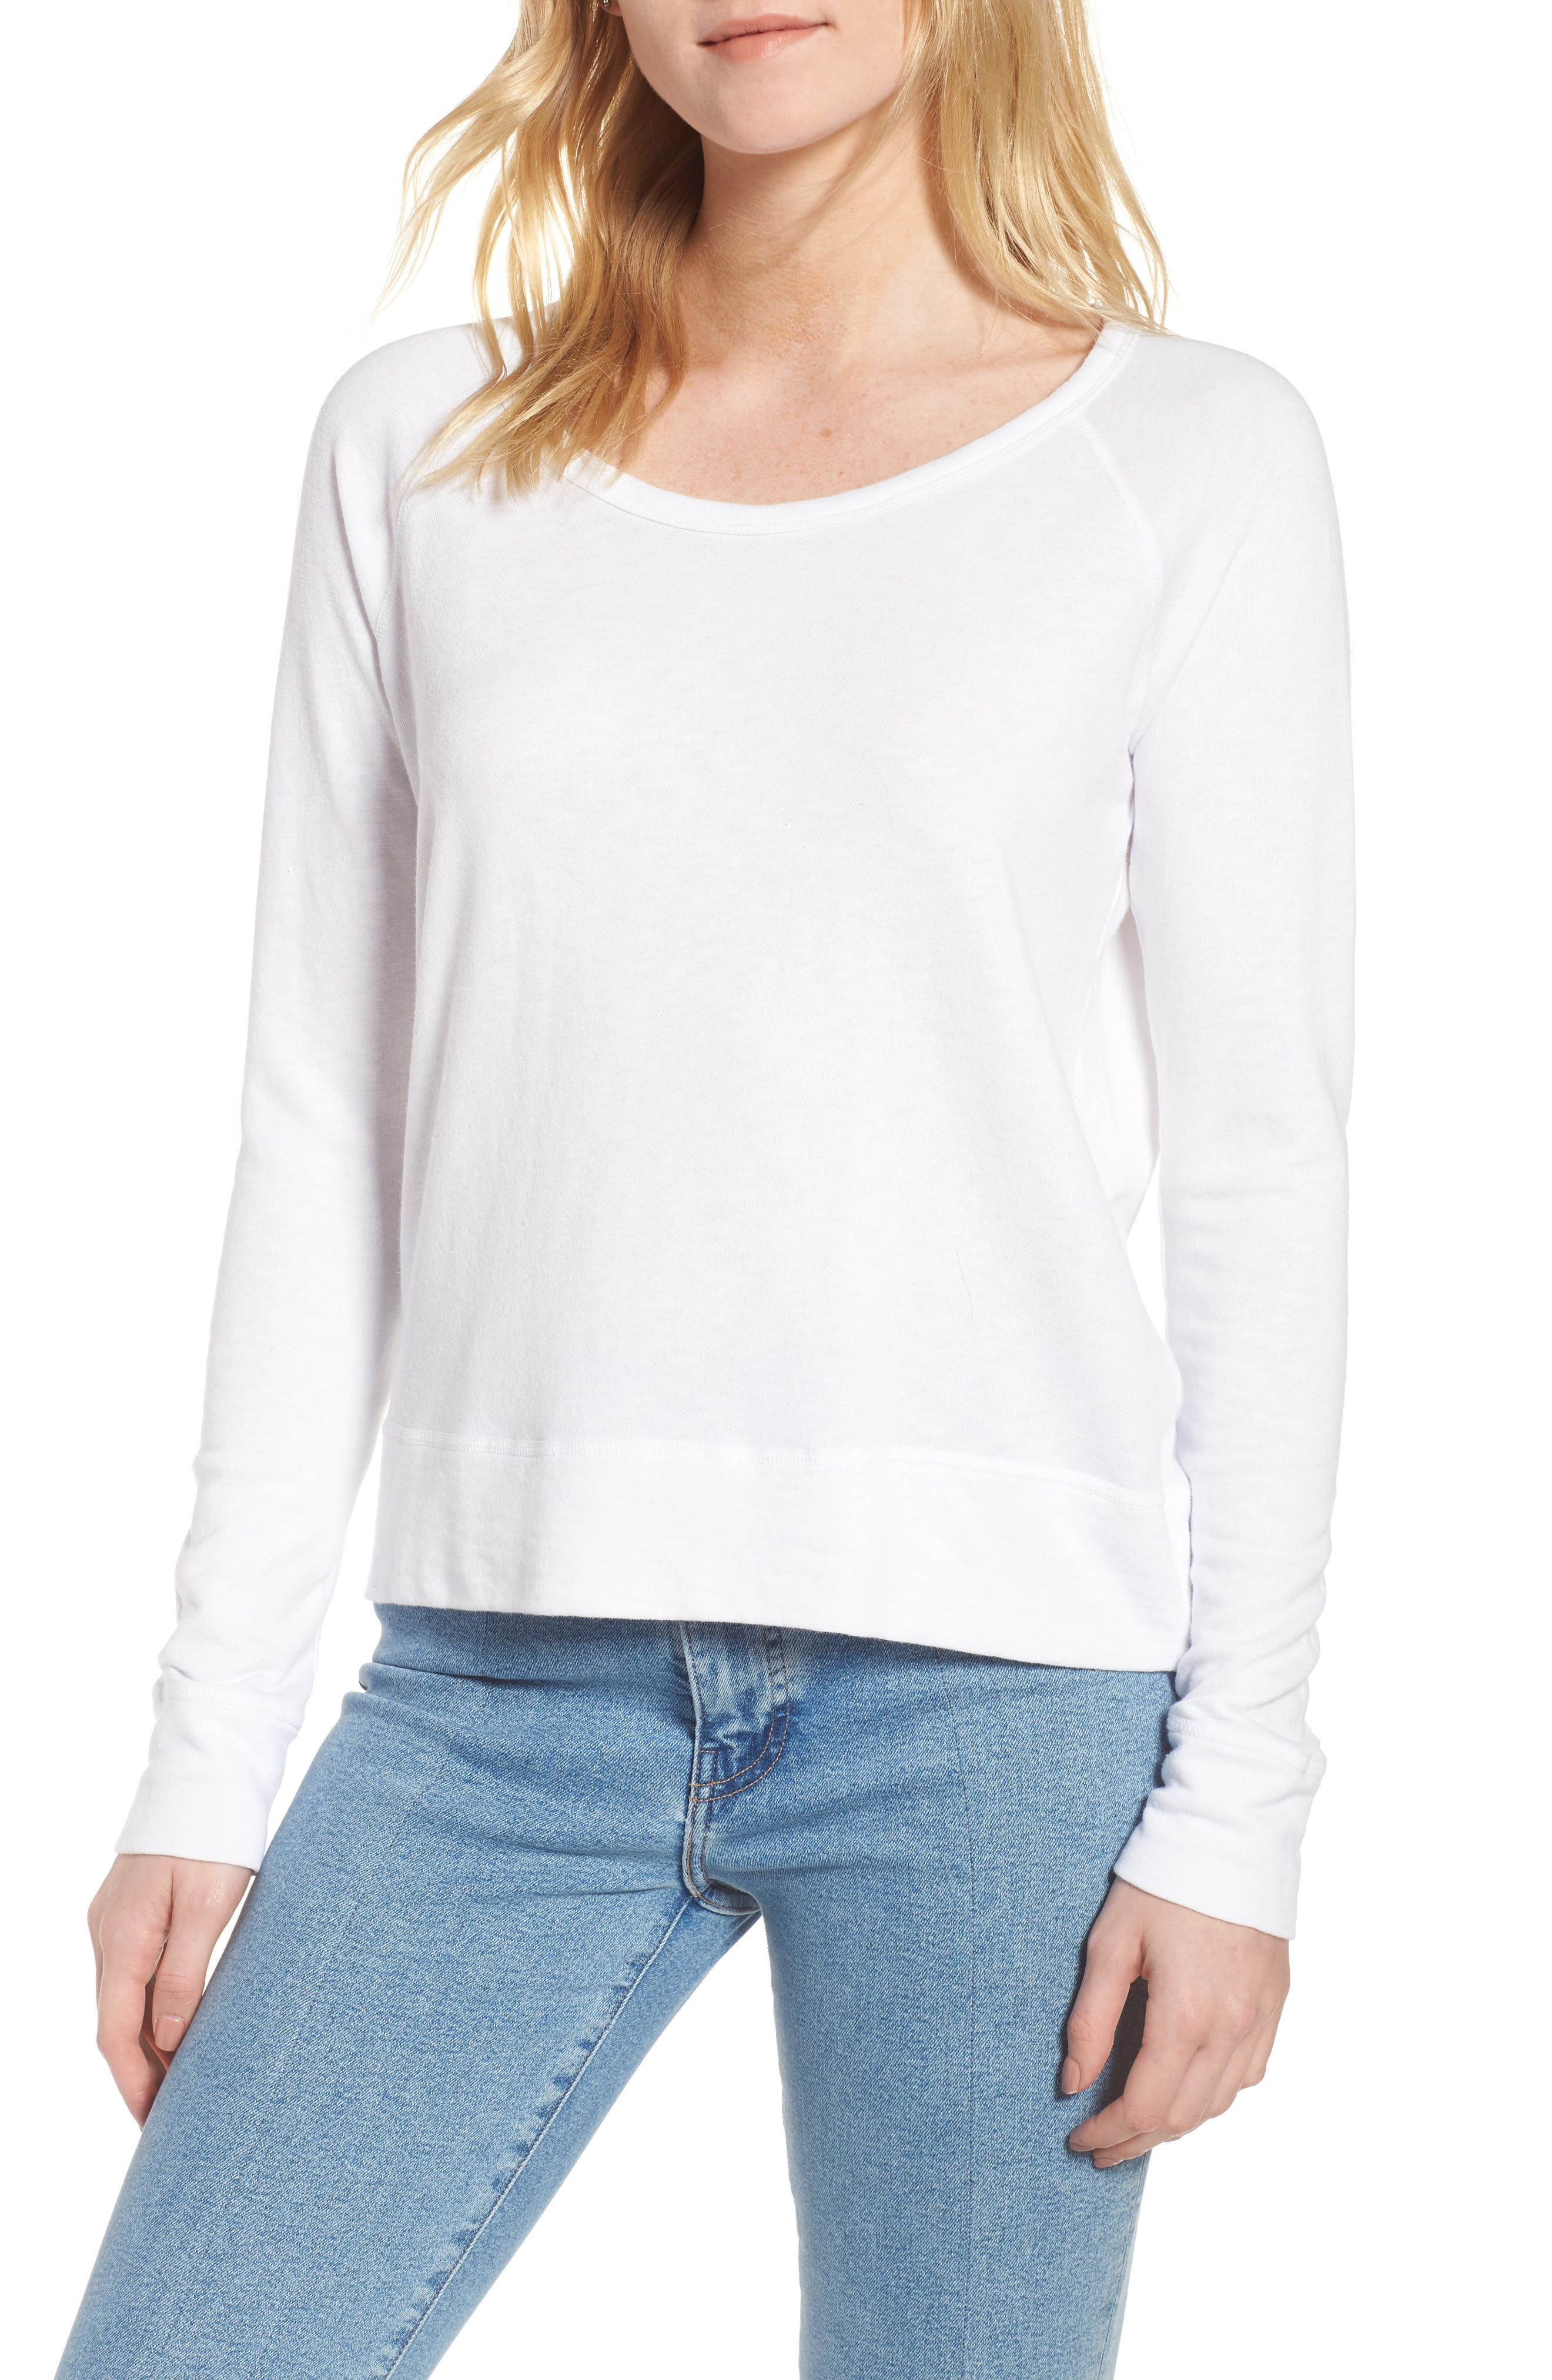 JAMES PERSE Classic Raglan Sweatshirt, Main, color, 100